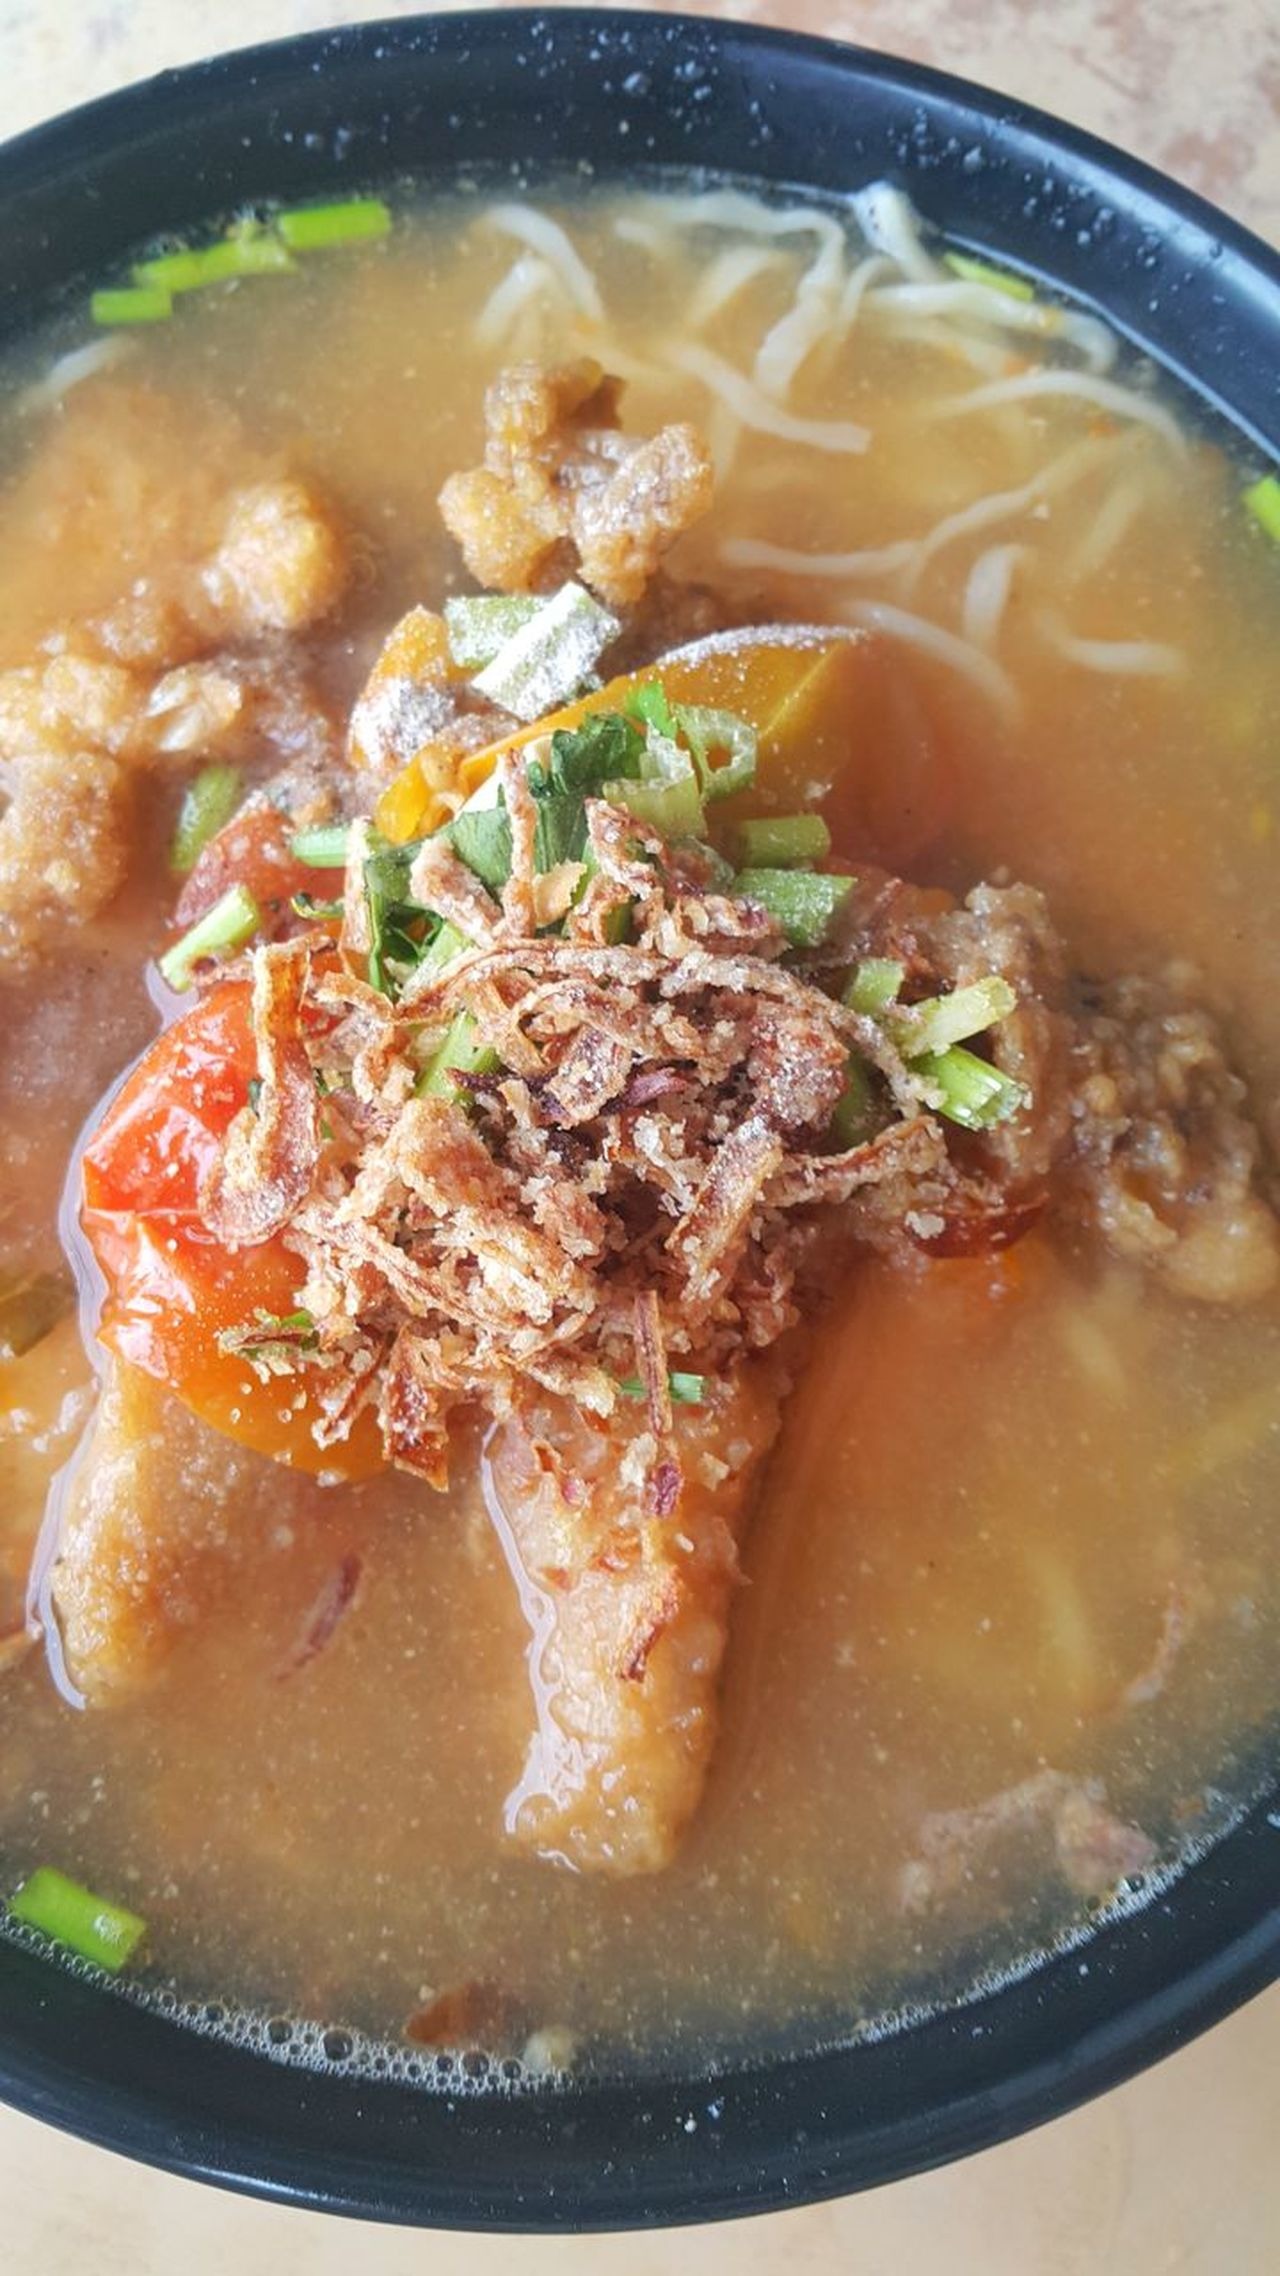 Breakfast mee soup Soup Food Food And Drink Bowl Healthy Eating Meat Savory Food Heat - Temperature No People Indoors  Freshness Beef Ready-to-eat Close-up Pork Vegetable Soup Thick Day